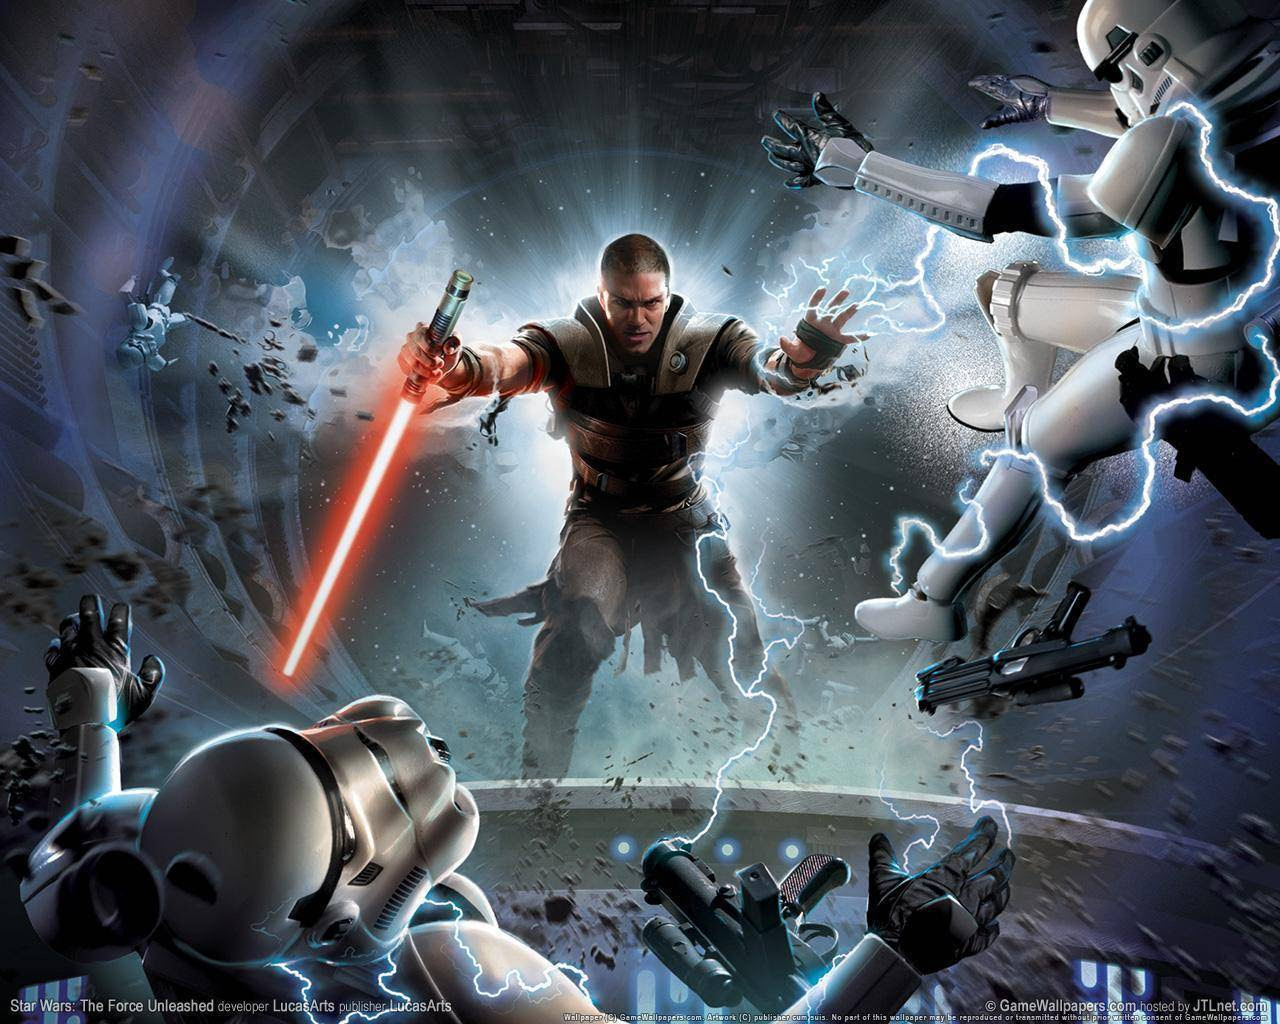 Star Wars The Force Unleased Star Wars The Force Unleashed